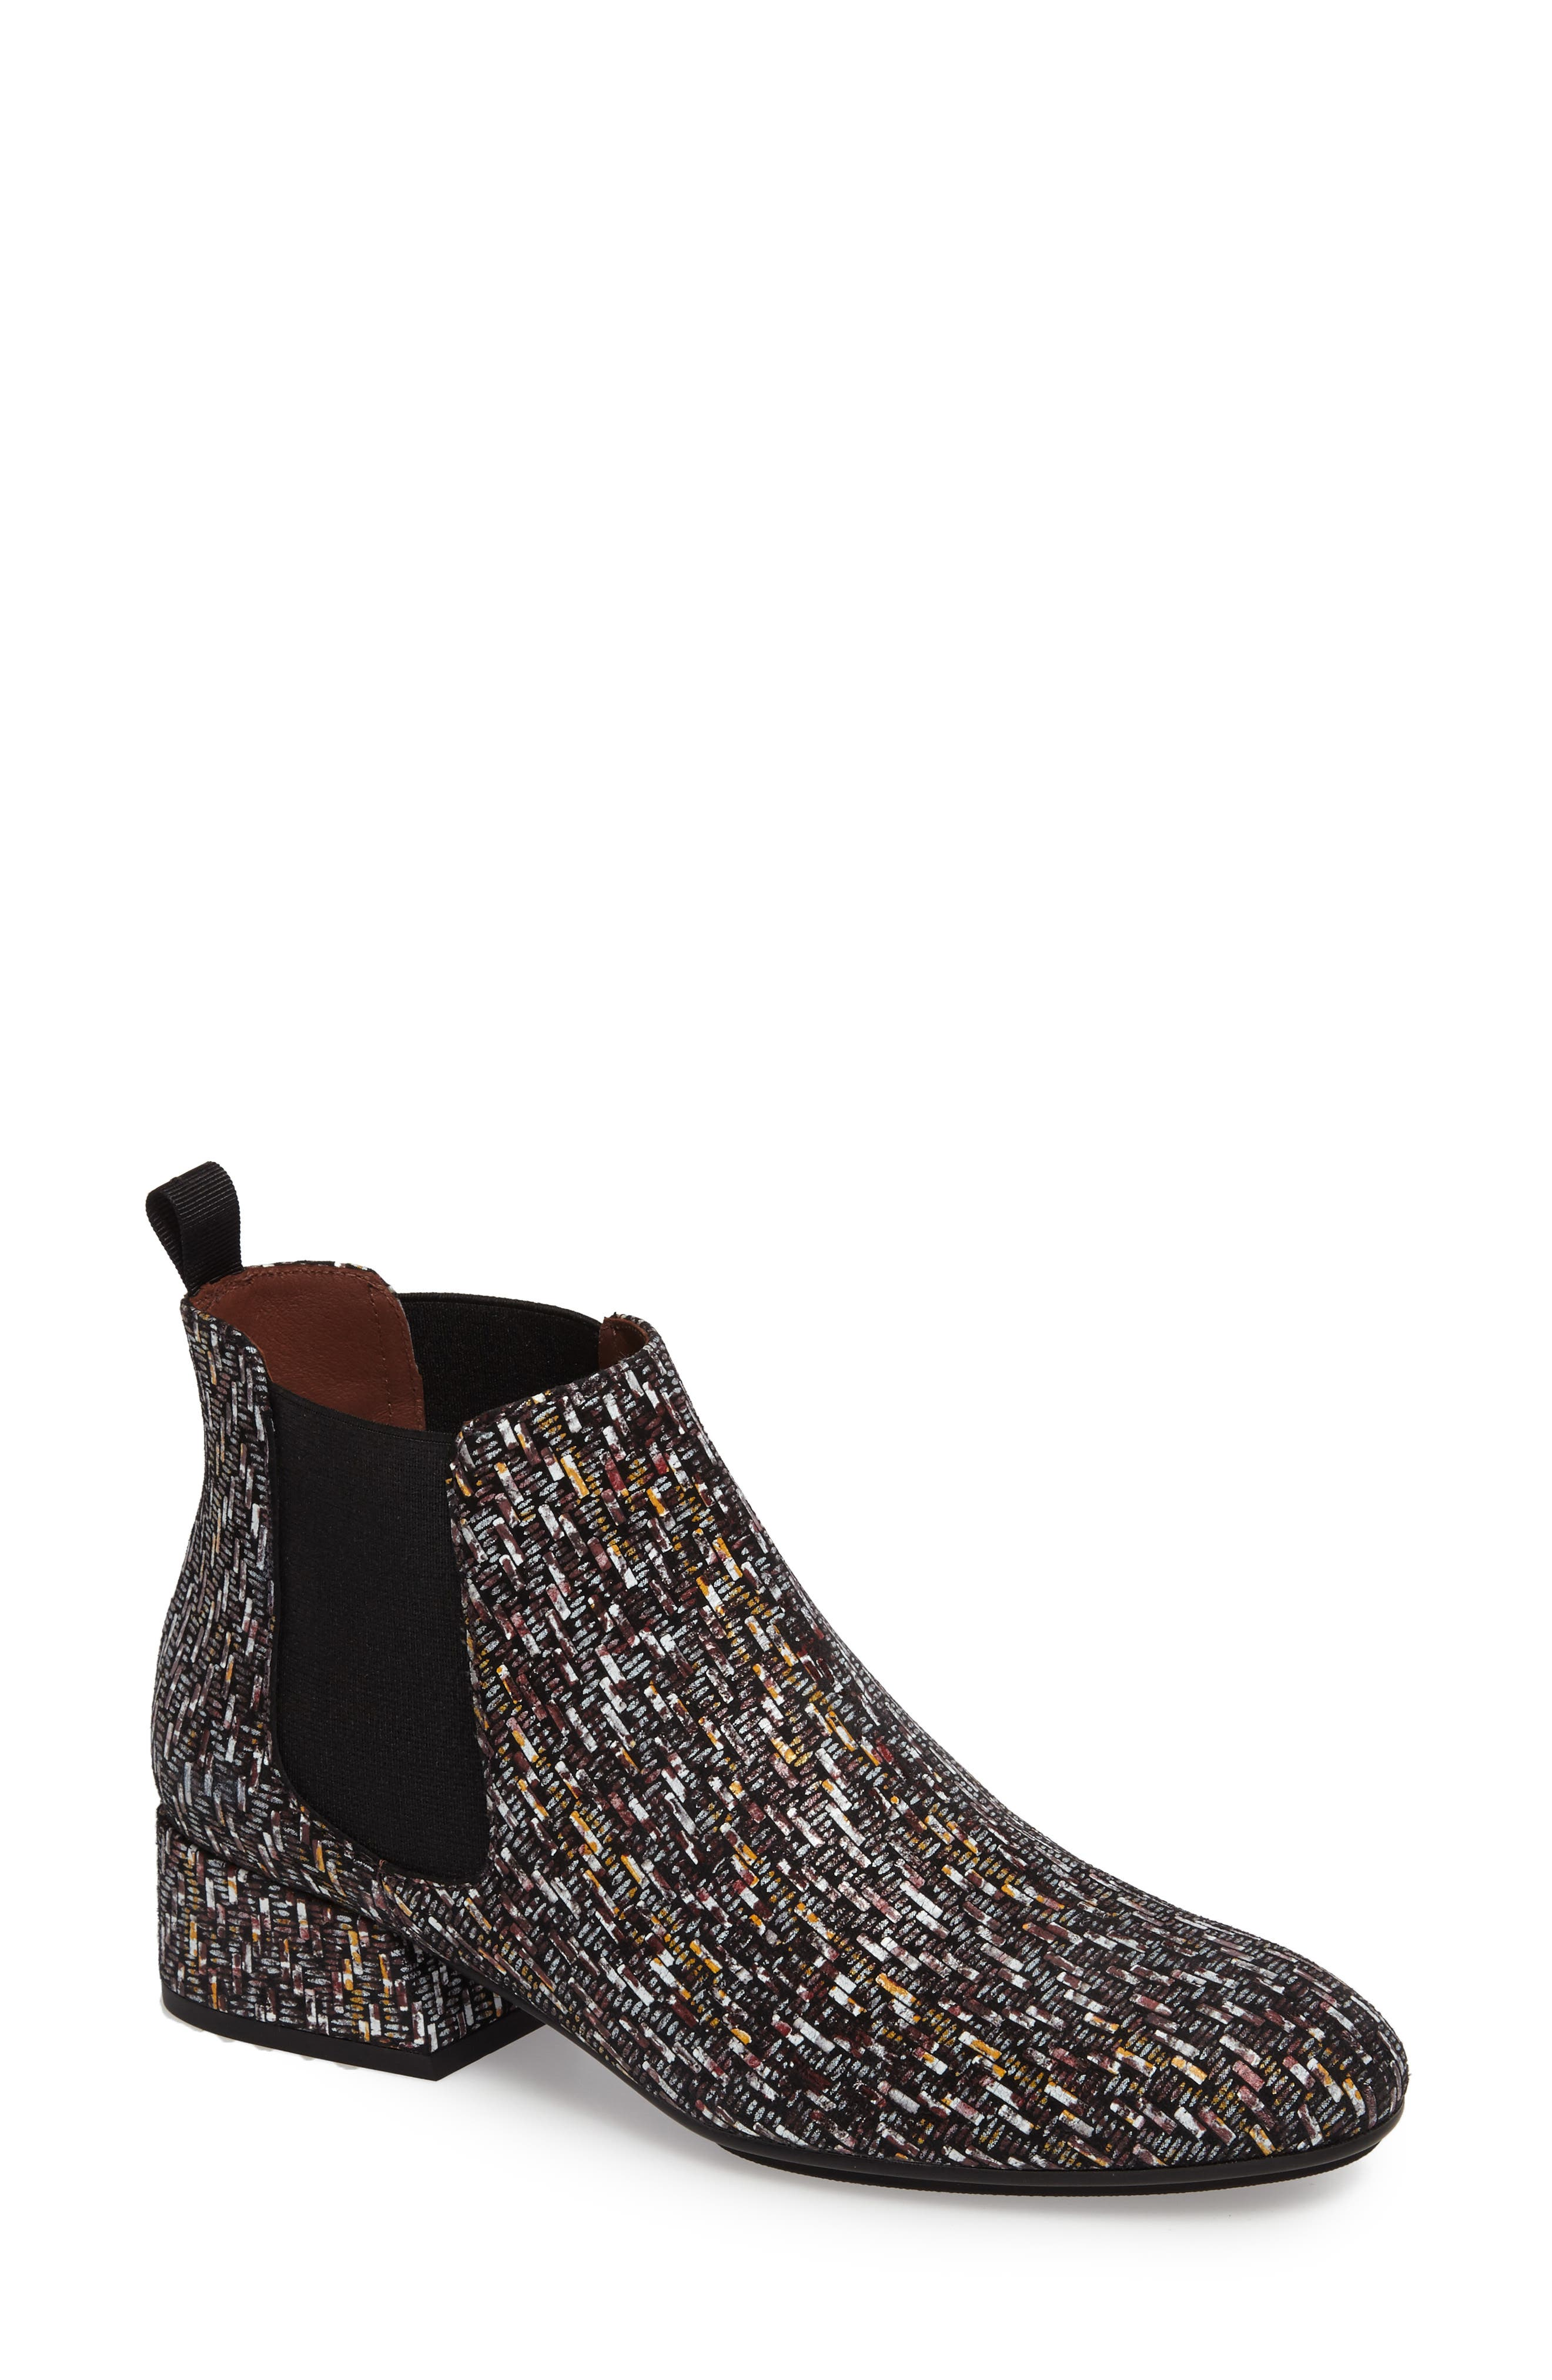 Ellys Patterned Chelsea Bootie,                             Main thumbnail 1, color,                             Bordo Leather